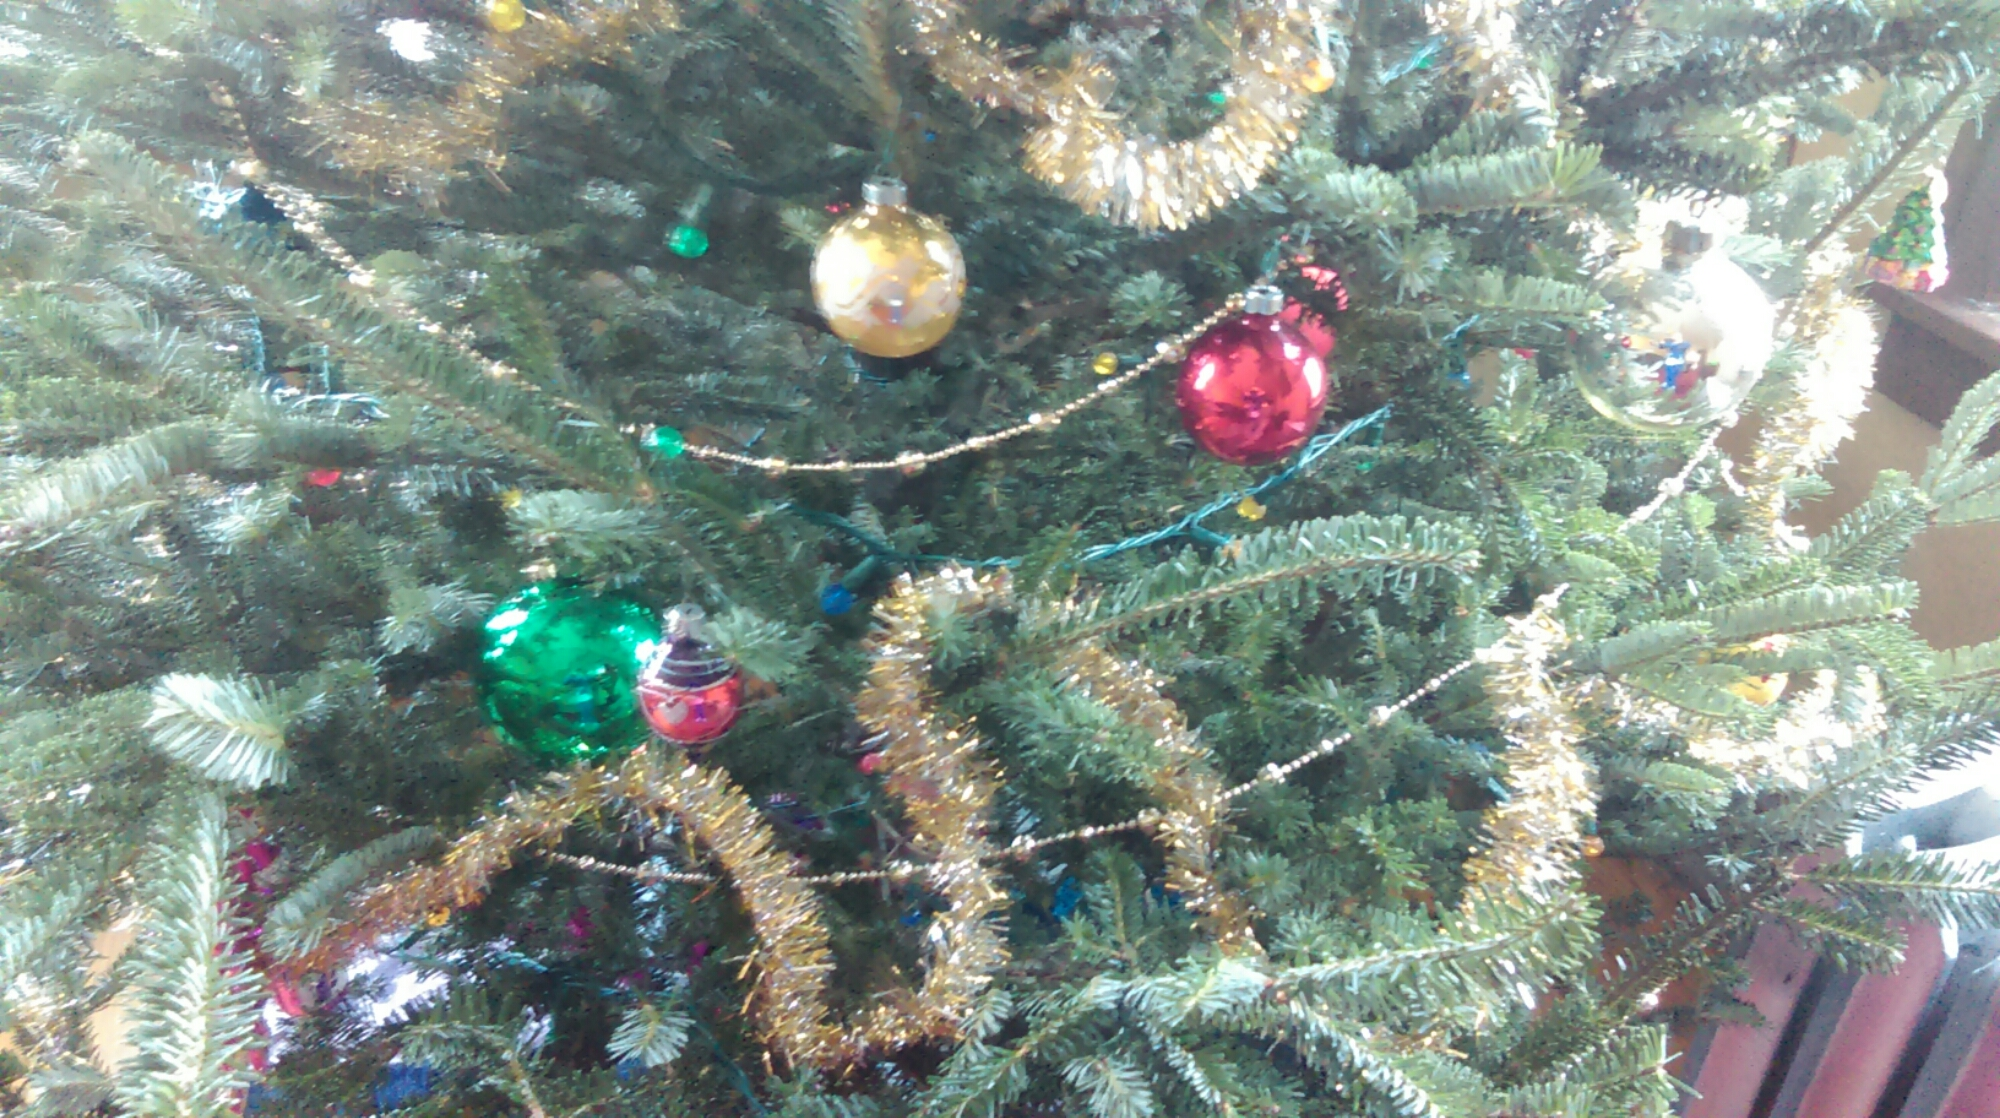 The tinsel--so meandering! And is that a red ornament behind another red one?!